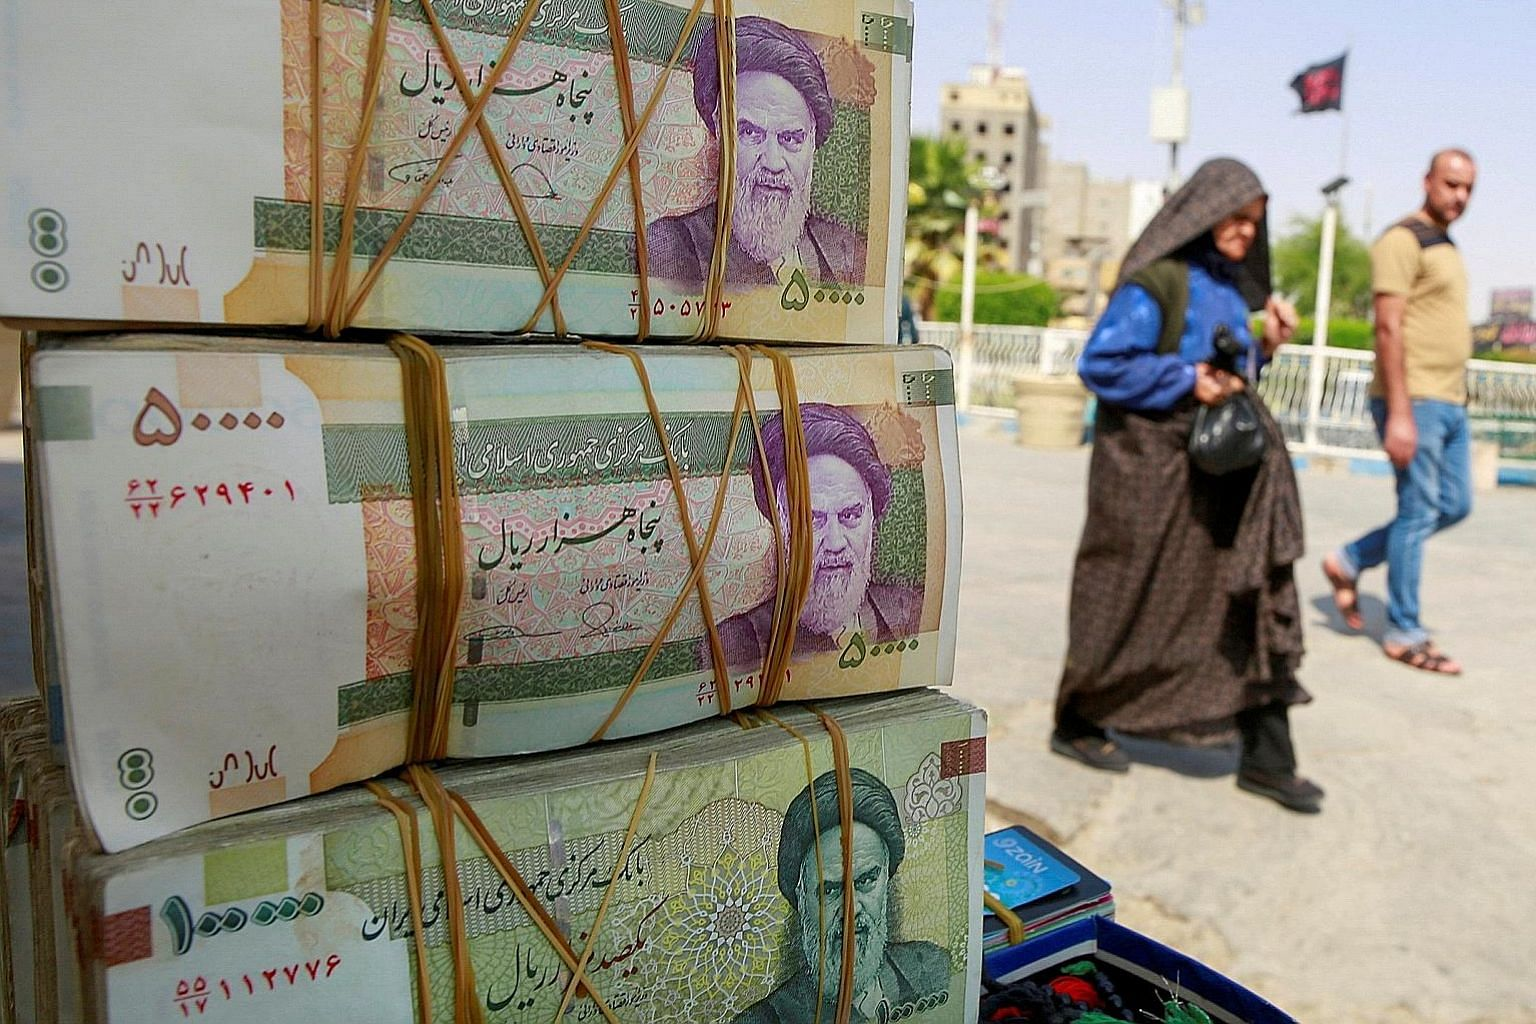 Since 2018, when the Trump administration repudiated the nuclear agreement and reimposed sanctions on Iran, the value of the Iranian currency, the rial (above), has fallen by roughly 60 per cent.